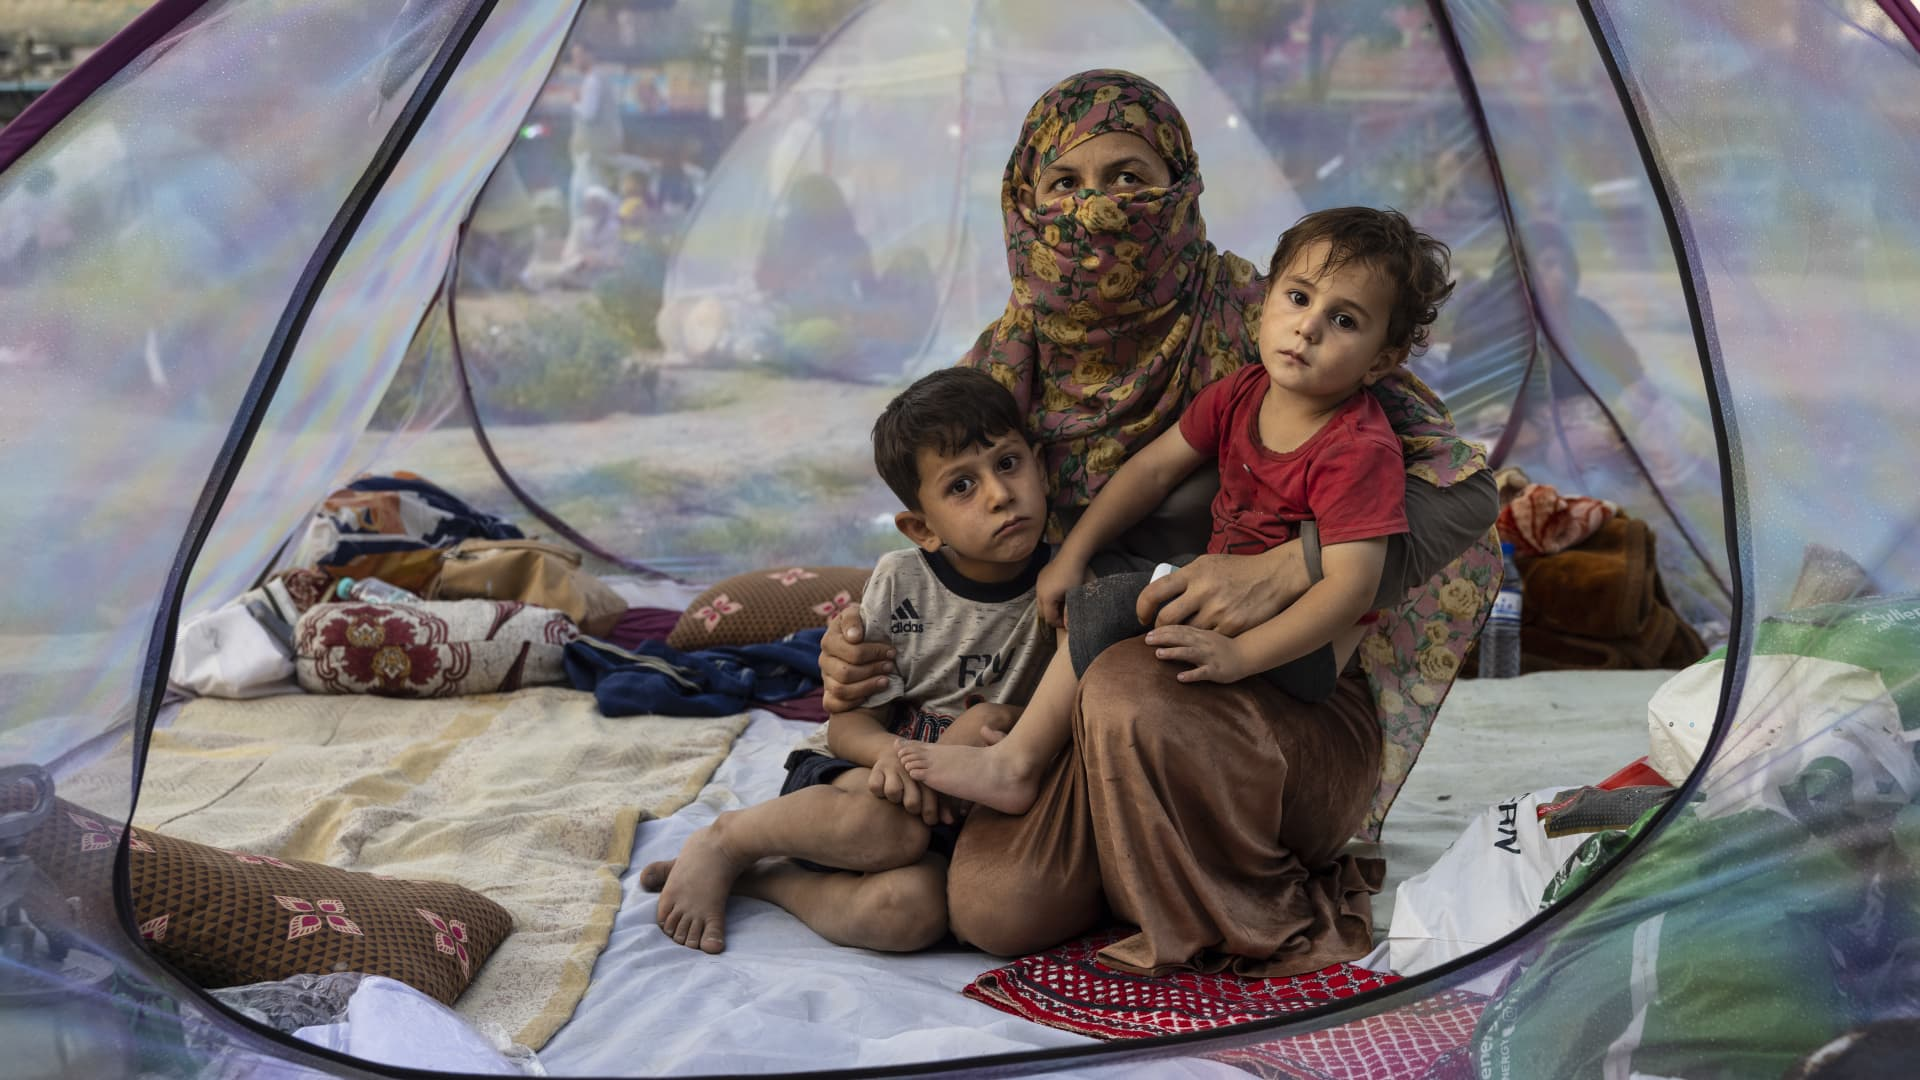 Farzia, 28, who lost her husband in Baghlan one week ago to fighting by the Taliban sits with her children, Subhan, 5, and Ismael ,2, in a tent at a makeshift IDP camp in Share-e-Naw park to various mosques and schools on August 12, 2021 in Kabul, Afghanistan.